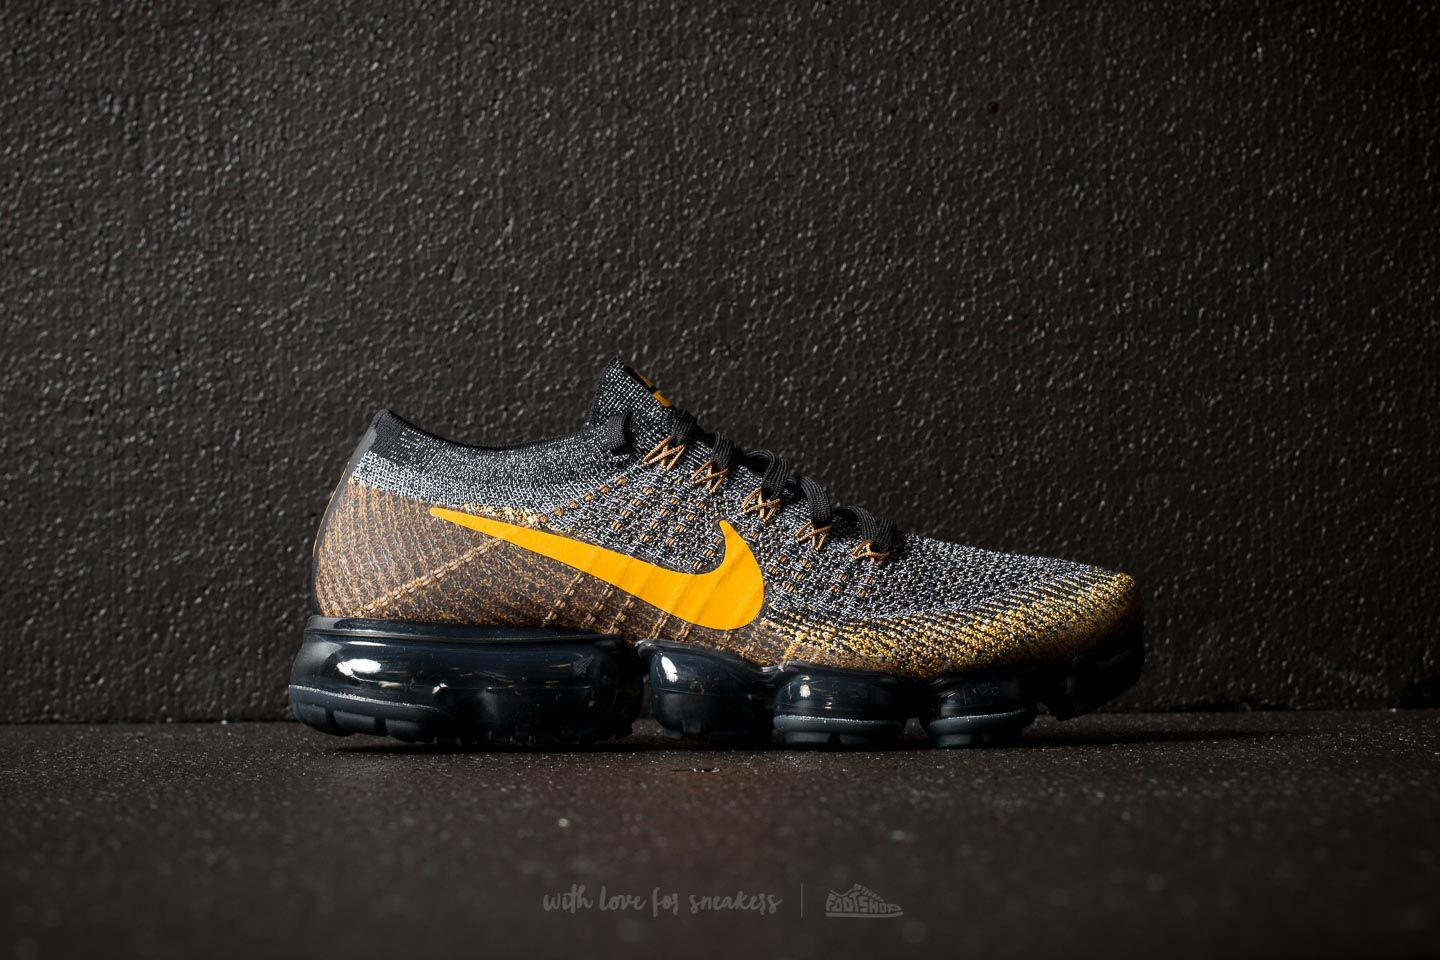 c06a47c173586 Lyst - Nike Air Vapormax Flyknit Black  Mineral Gold-dark Grey in ...